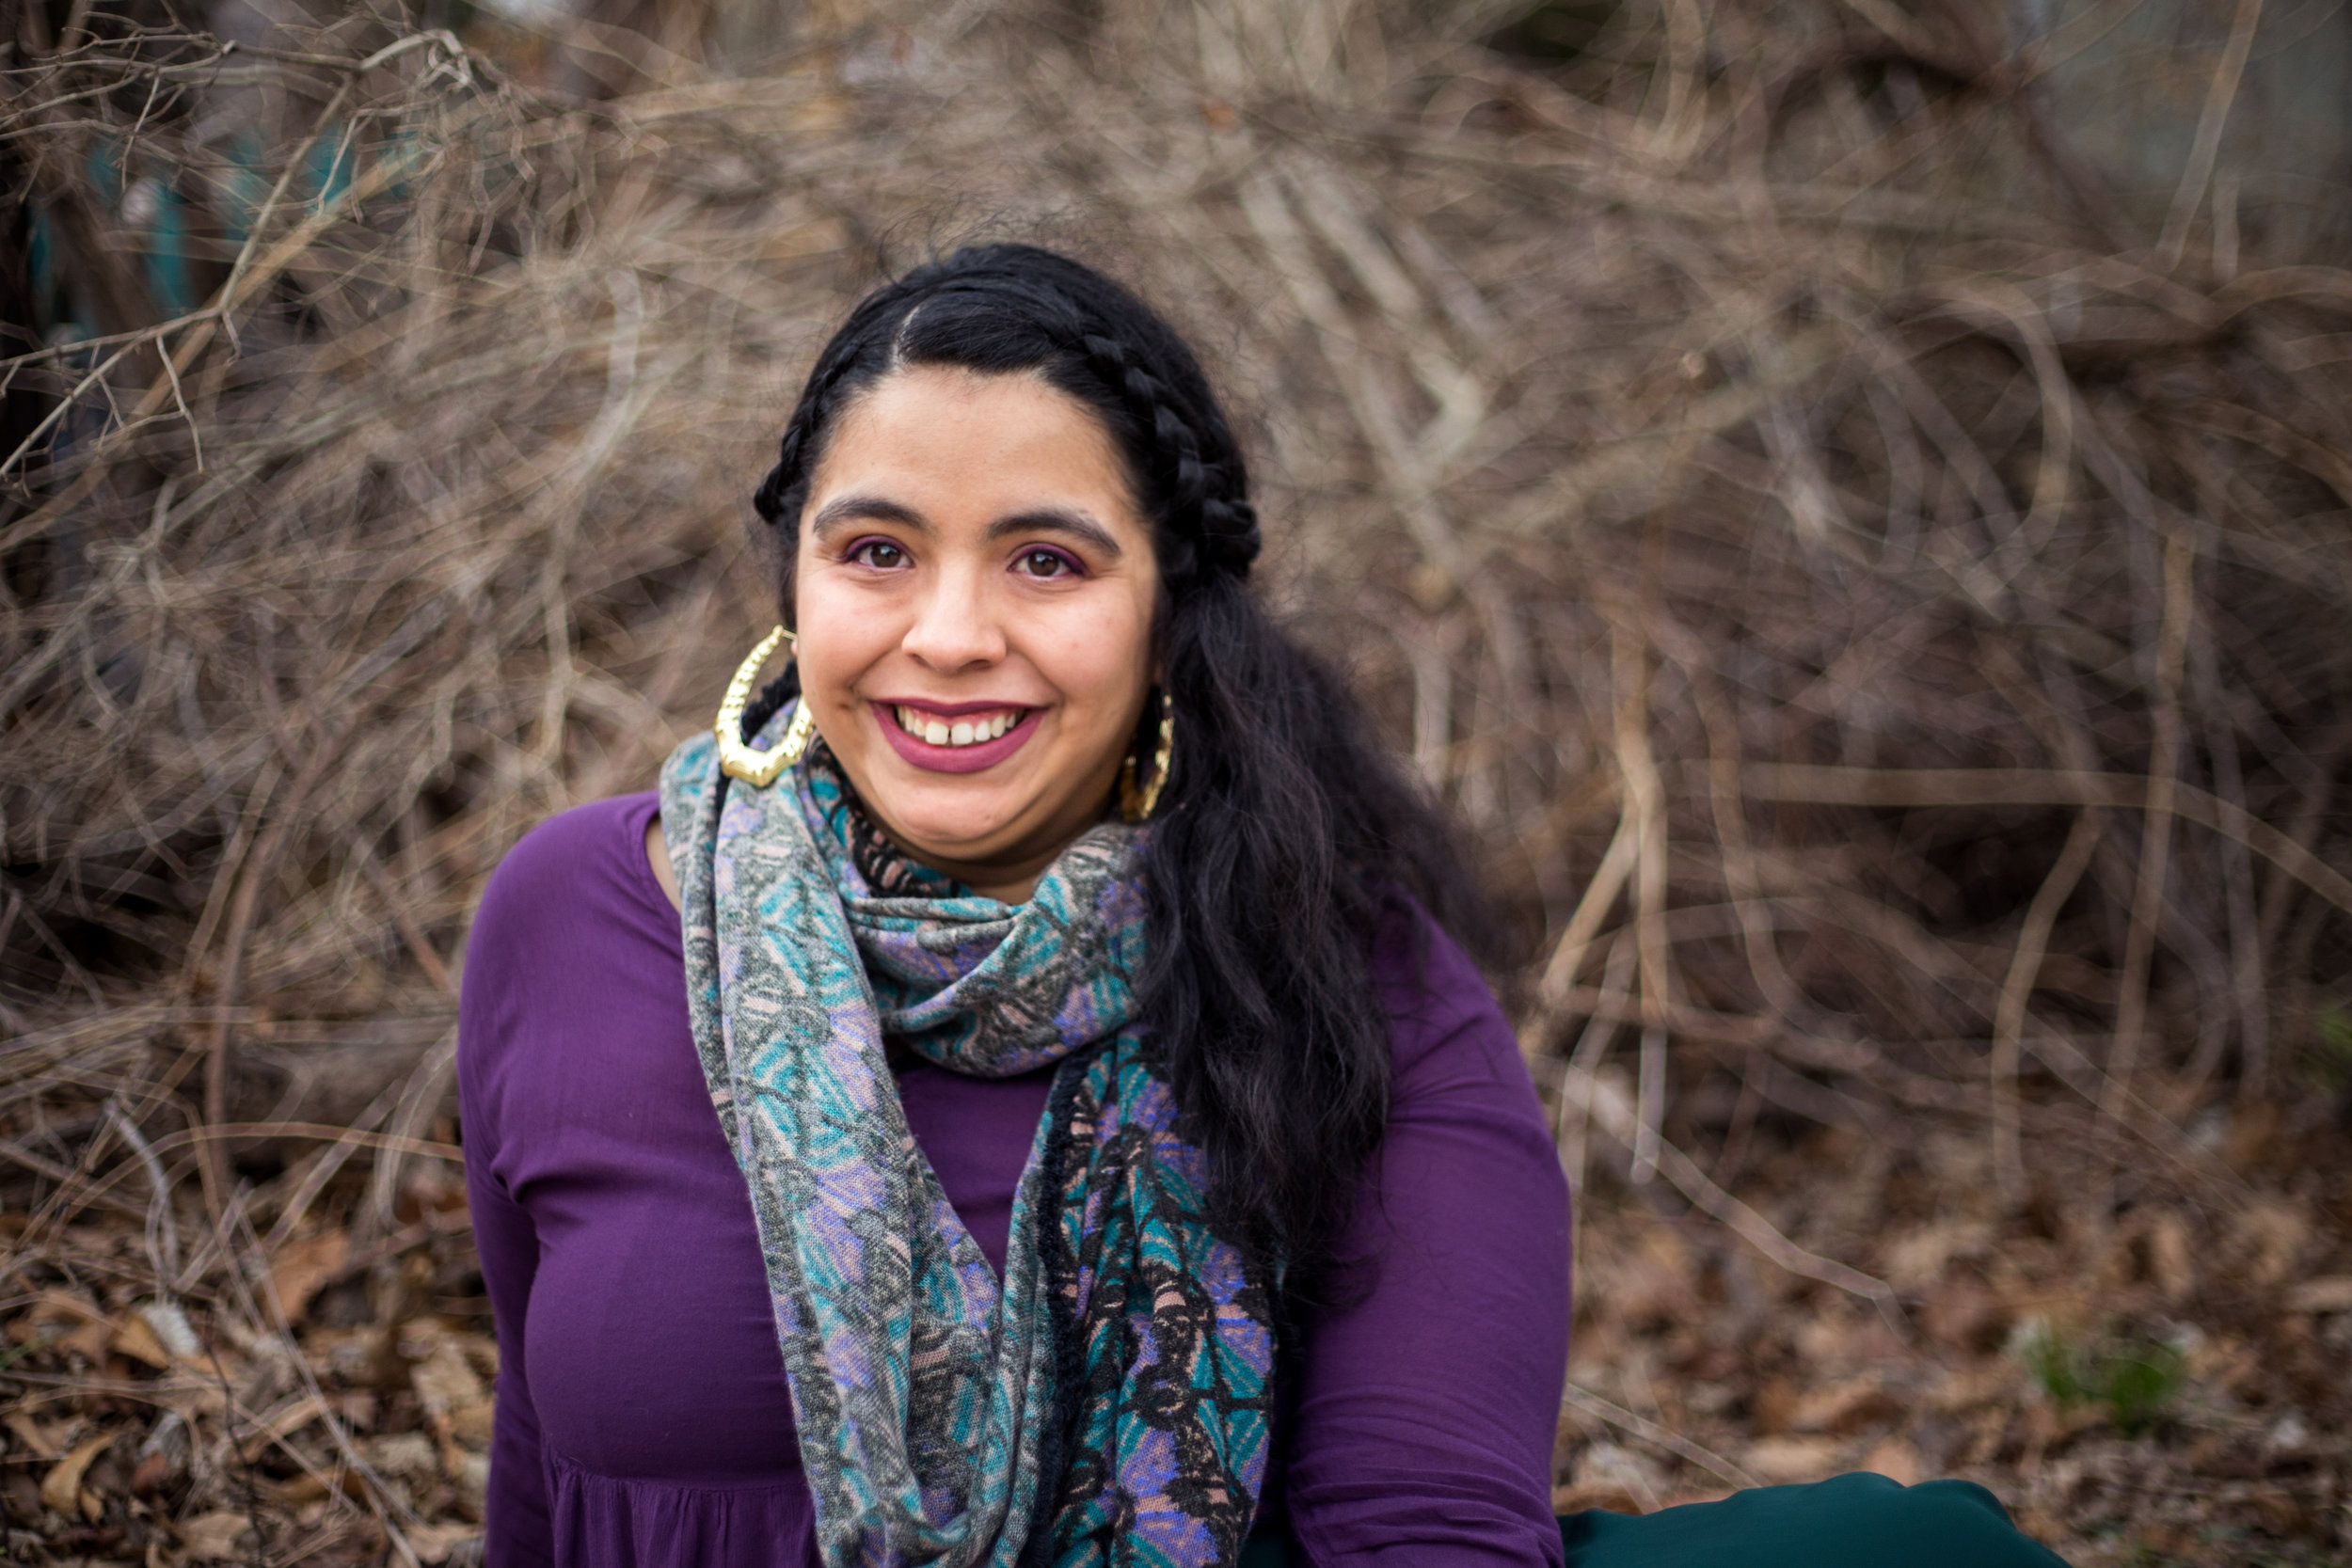 Marylin Hinojosa - Project Roles: Oral History Interviewer, Lead Artist.Marylin is a multi-disciplinary artist in Kansas. She is a Latinx woman from southwest Kansas. She earned an Associate of Arts at Dodge City Community College 2011 and graduated from the Arts Program at the University of Kansas in 2015. She has experience with multiple community mural projects. Marylin was a part of a large, collaborative commissioned sculpture project for the Federal Reserve of Kansas City in 2014. She is also a board member of the Enclave, an art collaborative, and a member of W.O.C* Makers in Lawrence KS. *w.o.c.: pronounced woke; woman of color.To learn more about Marylin click here.